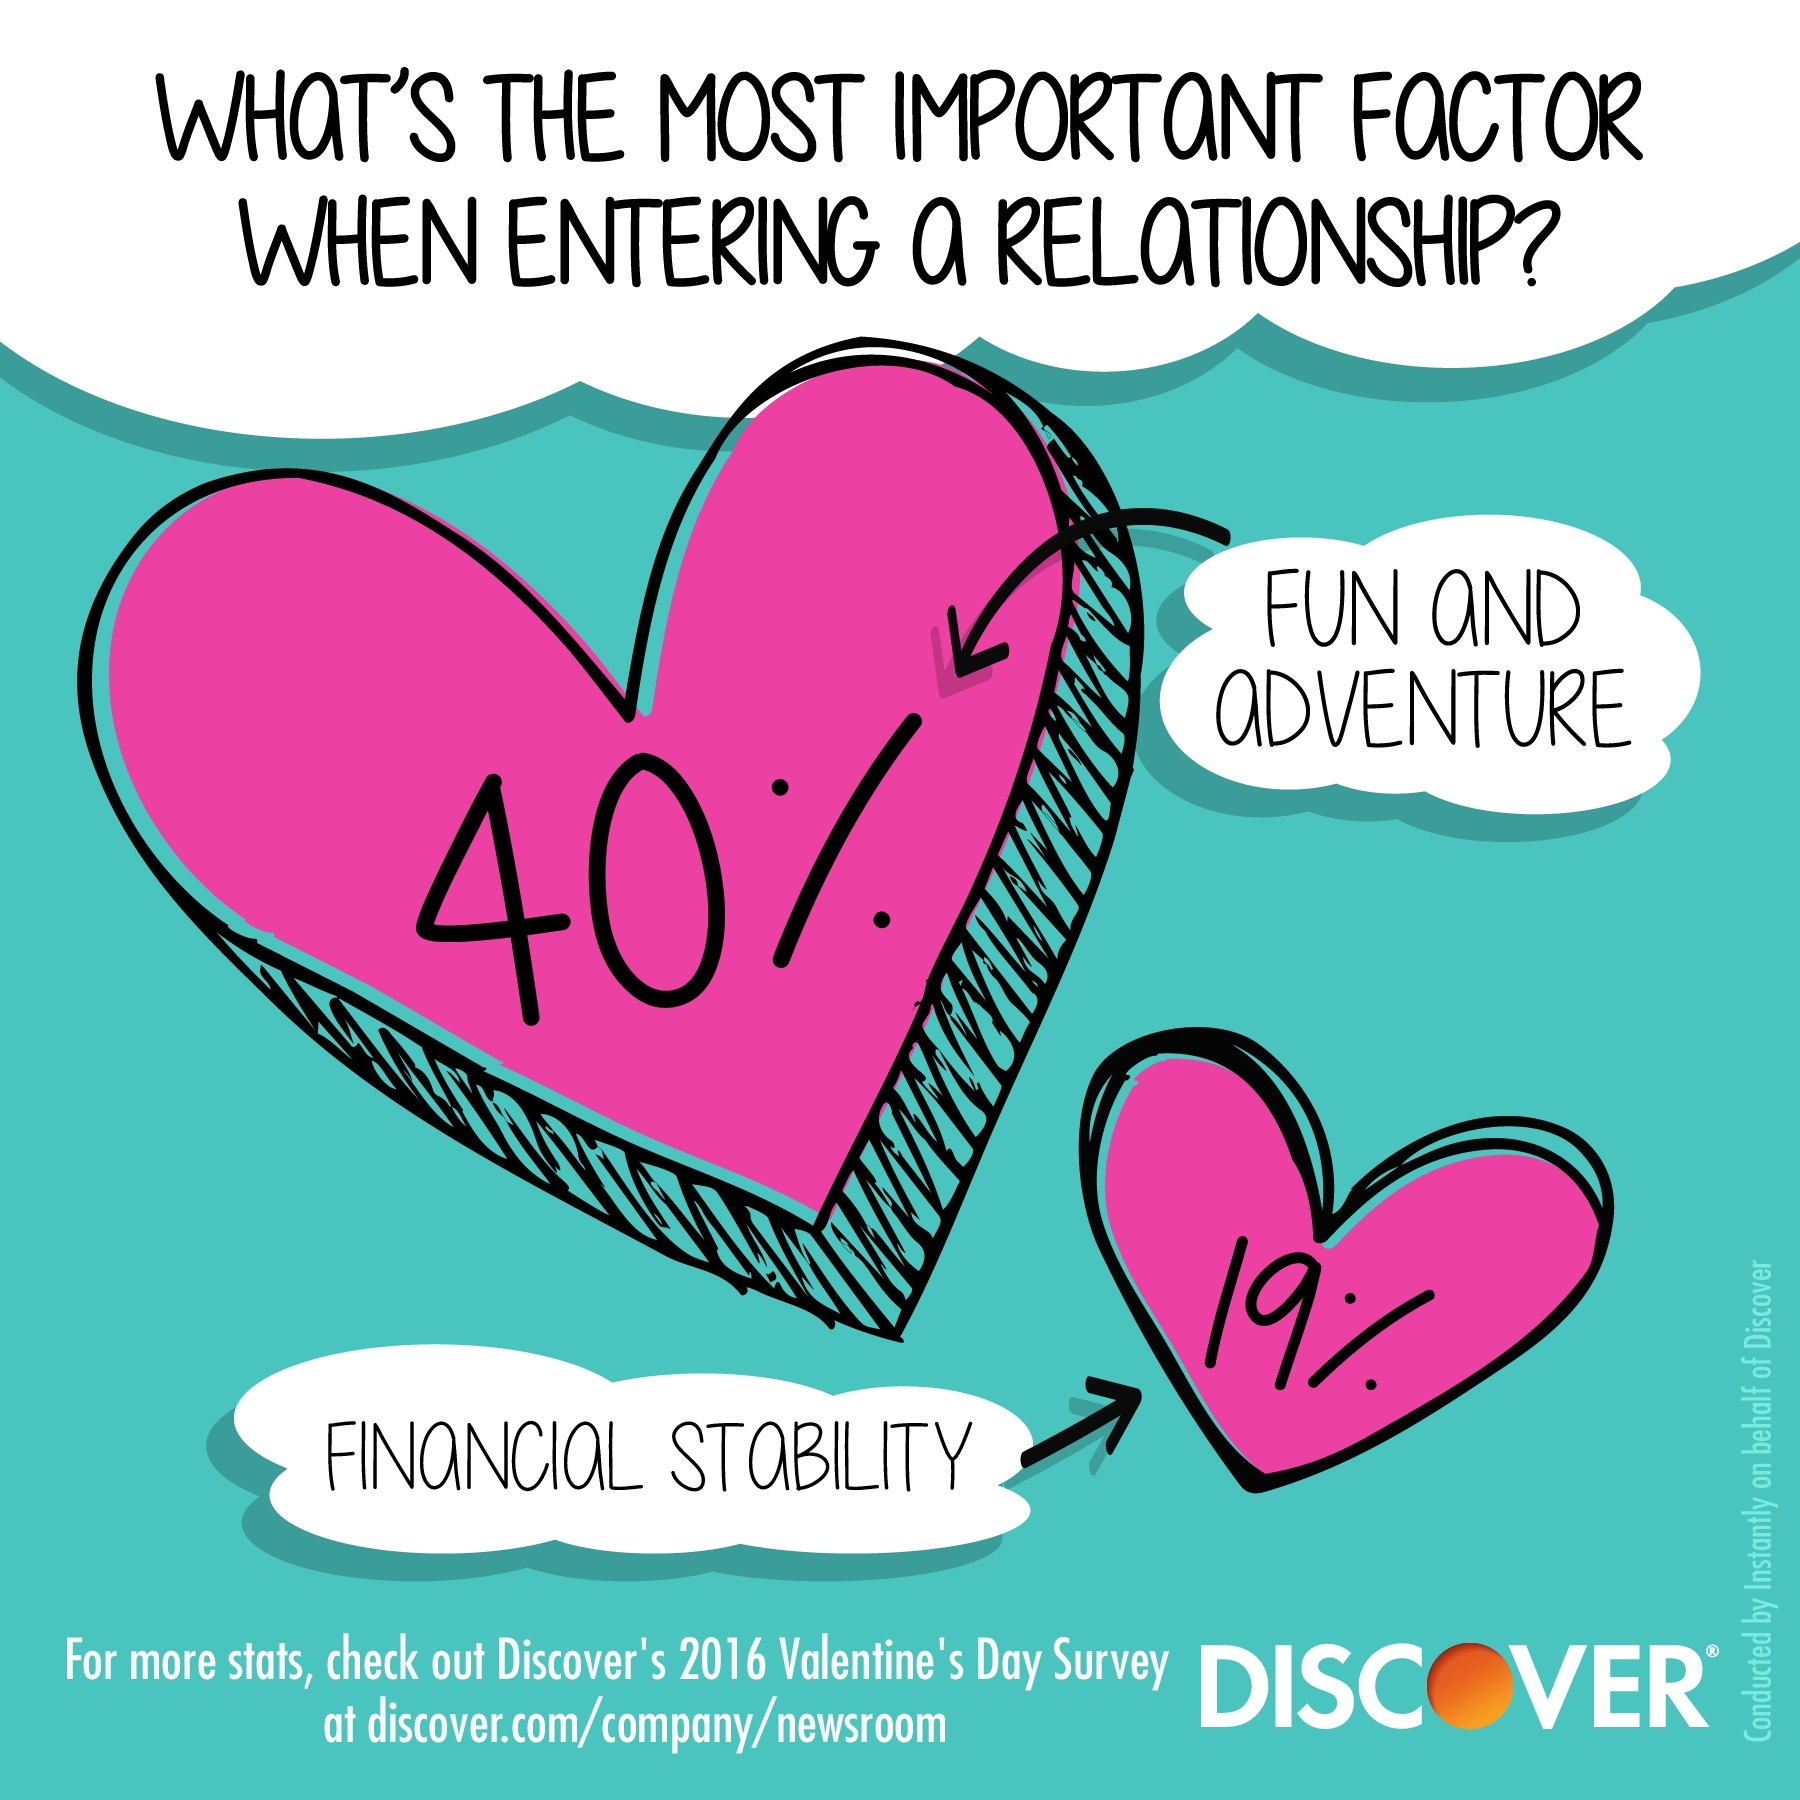 better to be fun than rich: discover valentine's day survey, Ideas